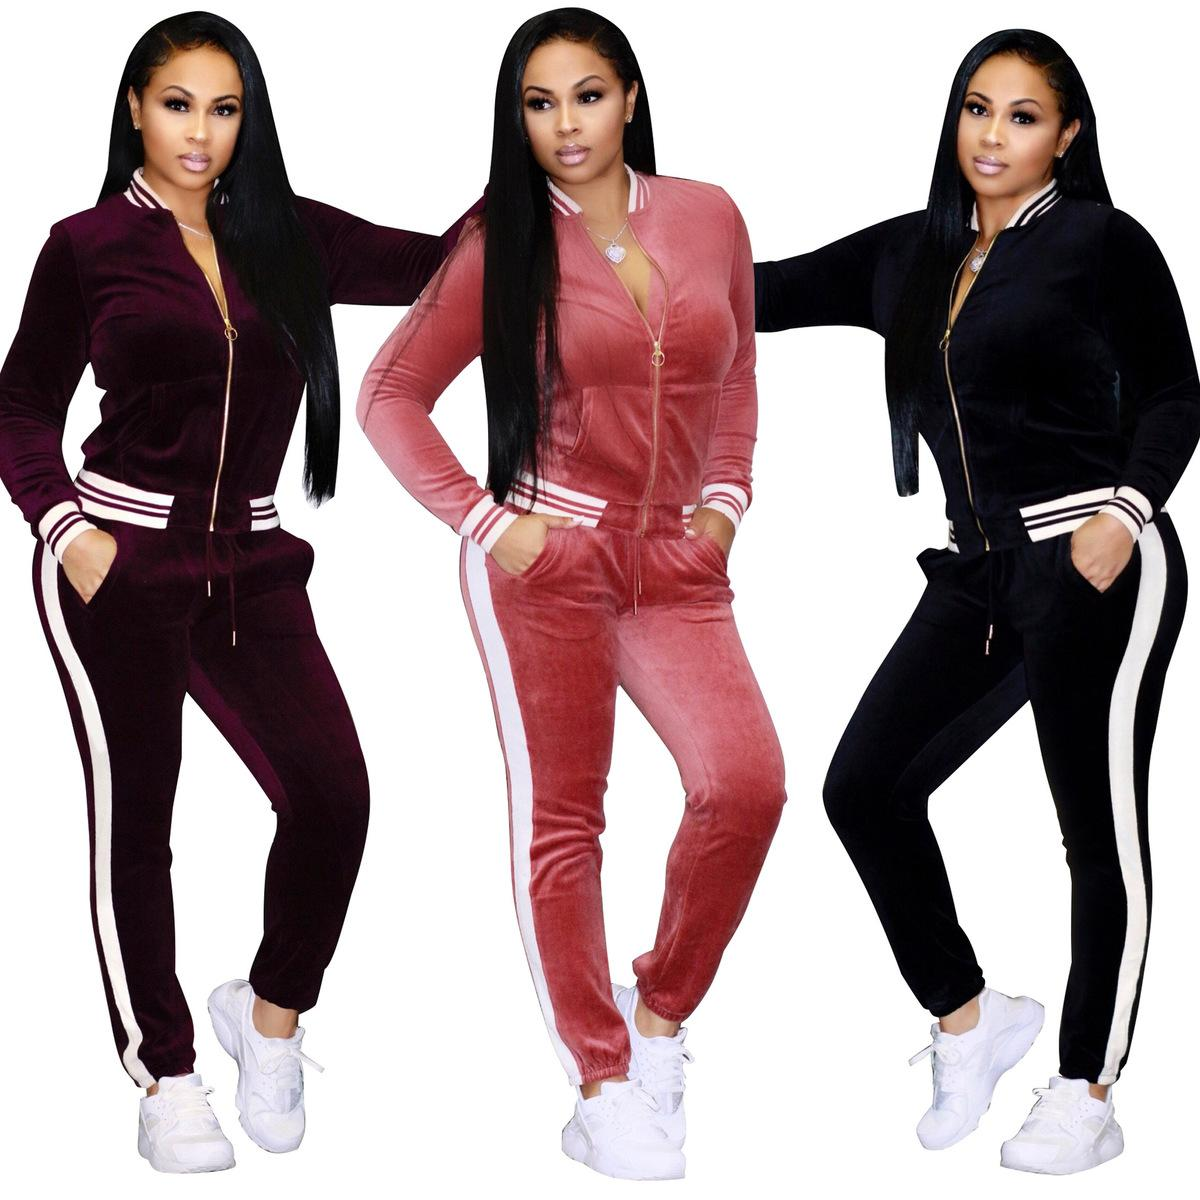 051f627121 Sexy Hot Sale Fashion Clothes fashion casual Suit Women Sport Sports Ladies  Tracksuits Print Tops Women Sets